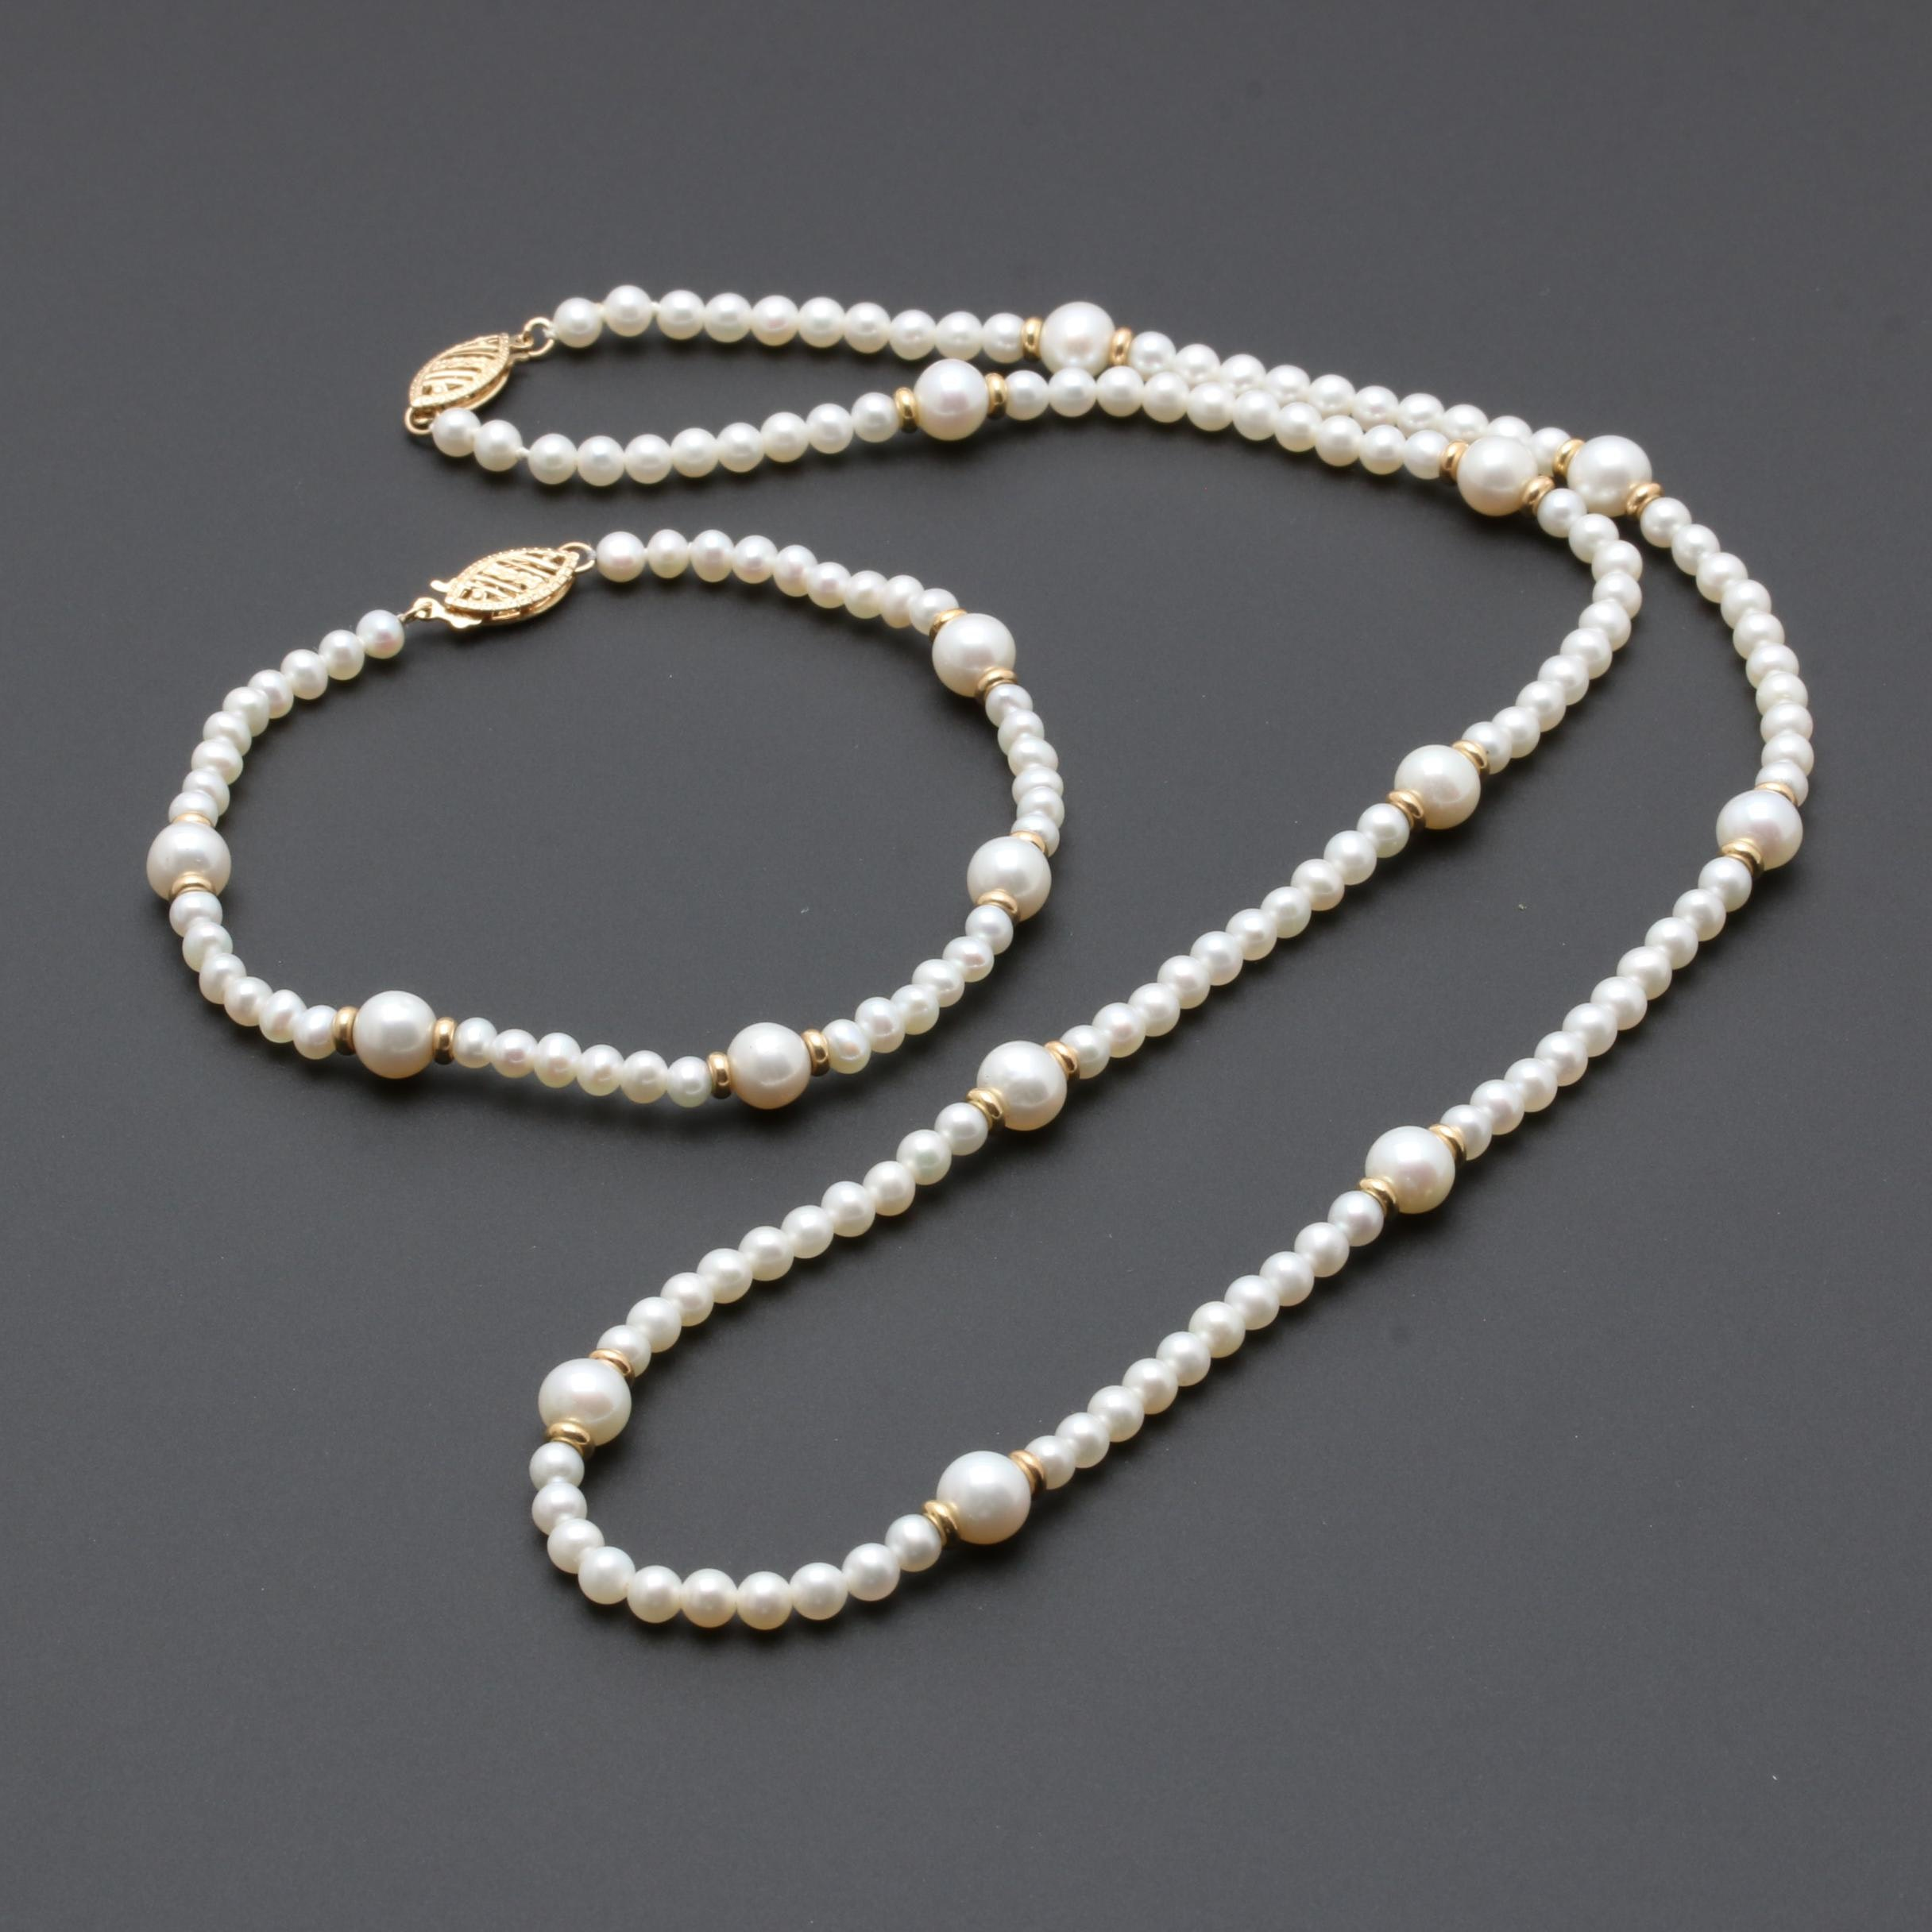 14K Yellow Gold Cultured Freshwater Pearl Demi Parure